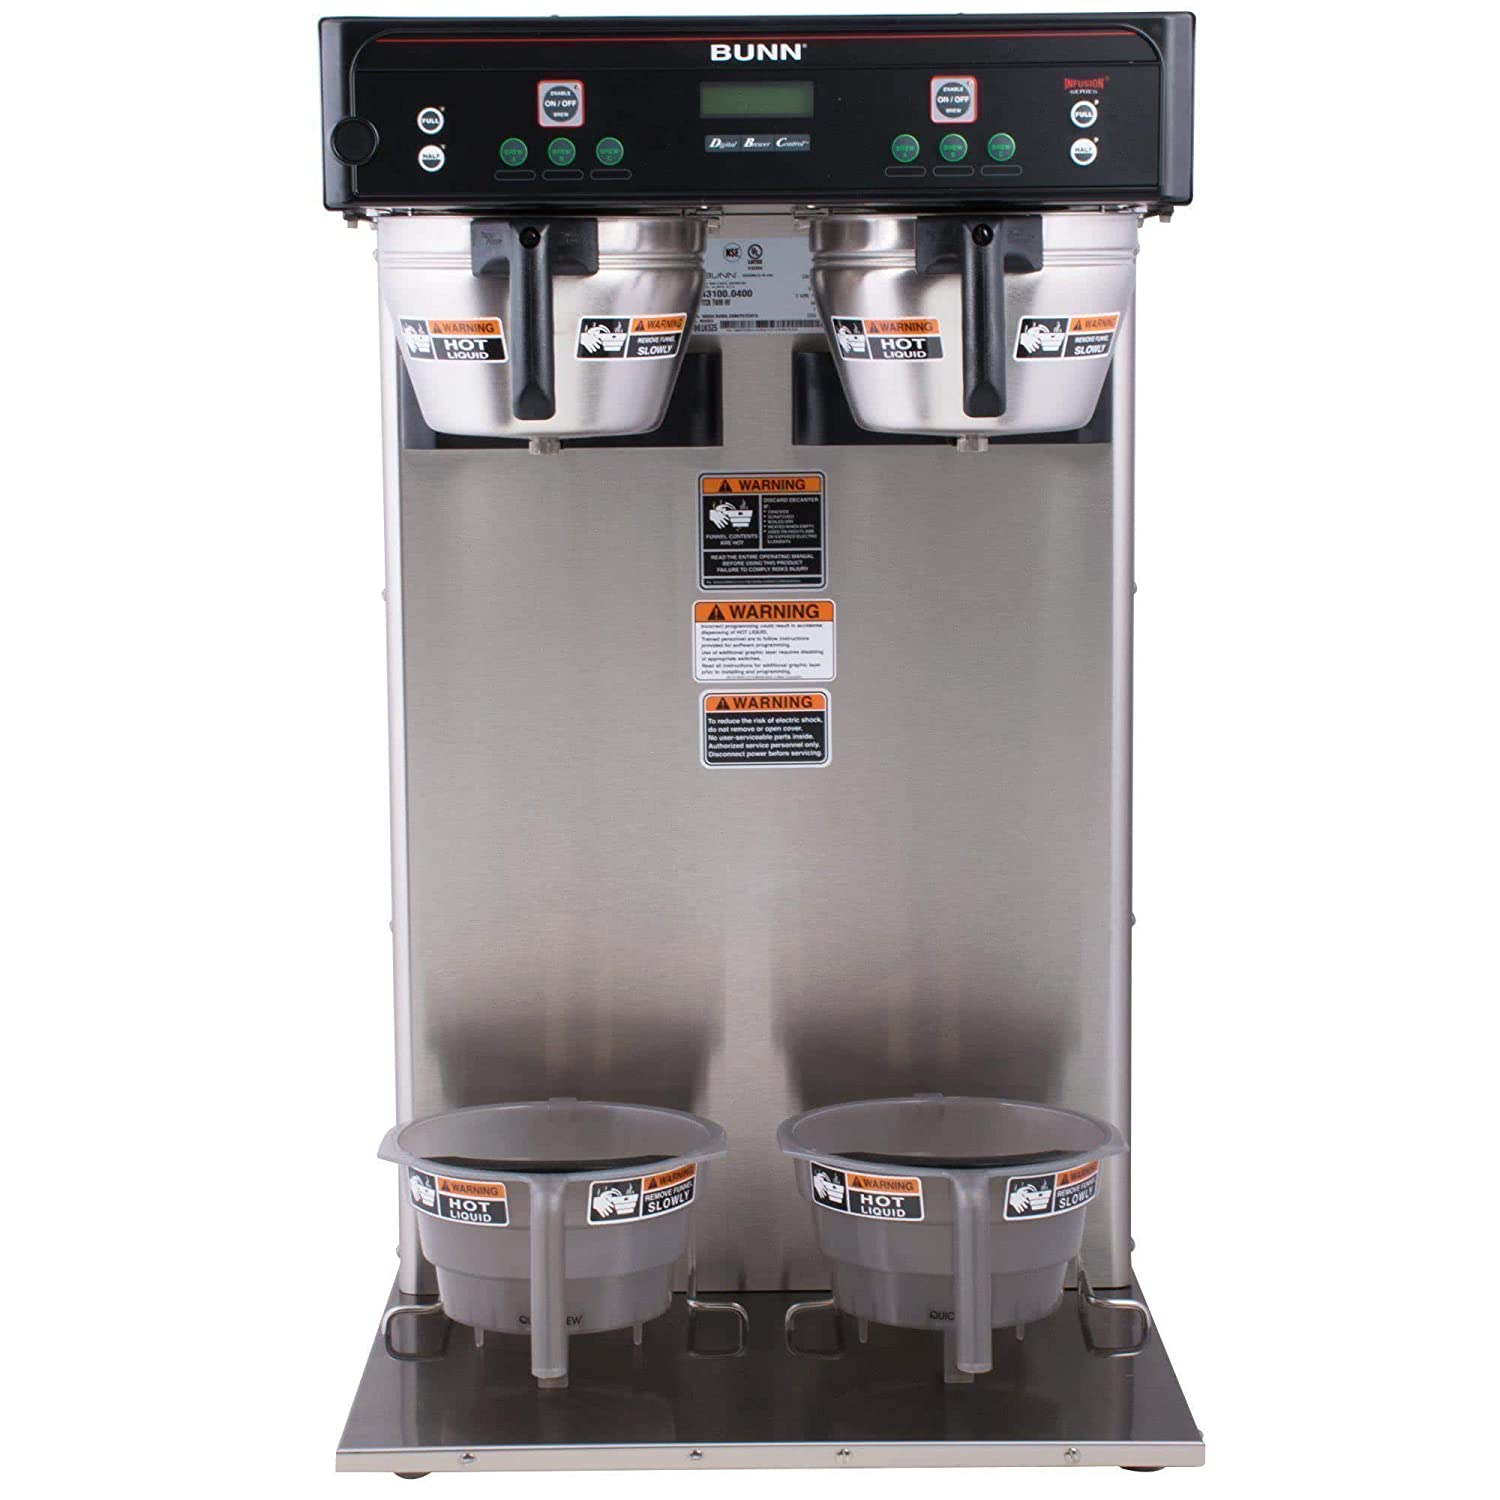 Bunn 43100.0000 ITCB High Volume Twin 1.0-1.5 Gal. Tea & Coffee Brewer